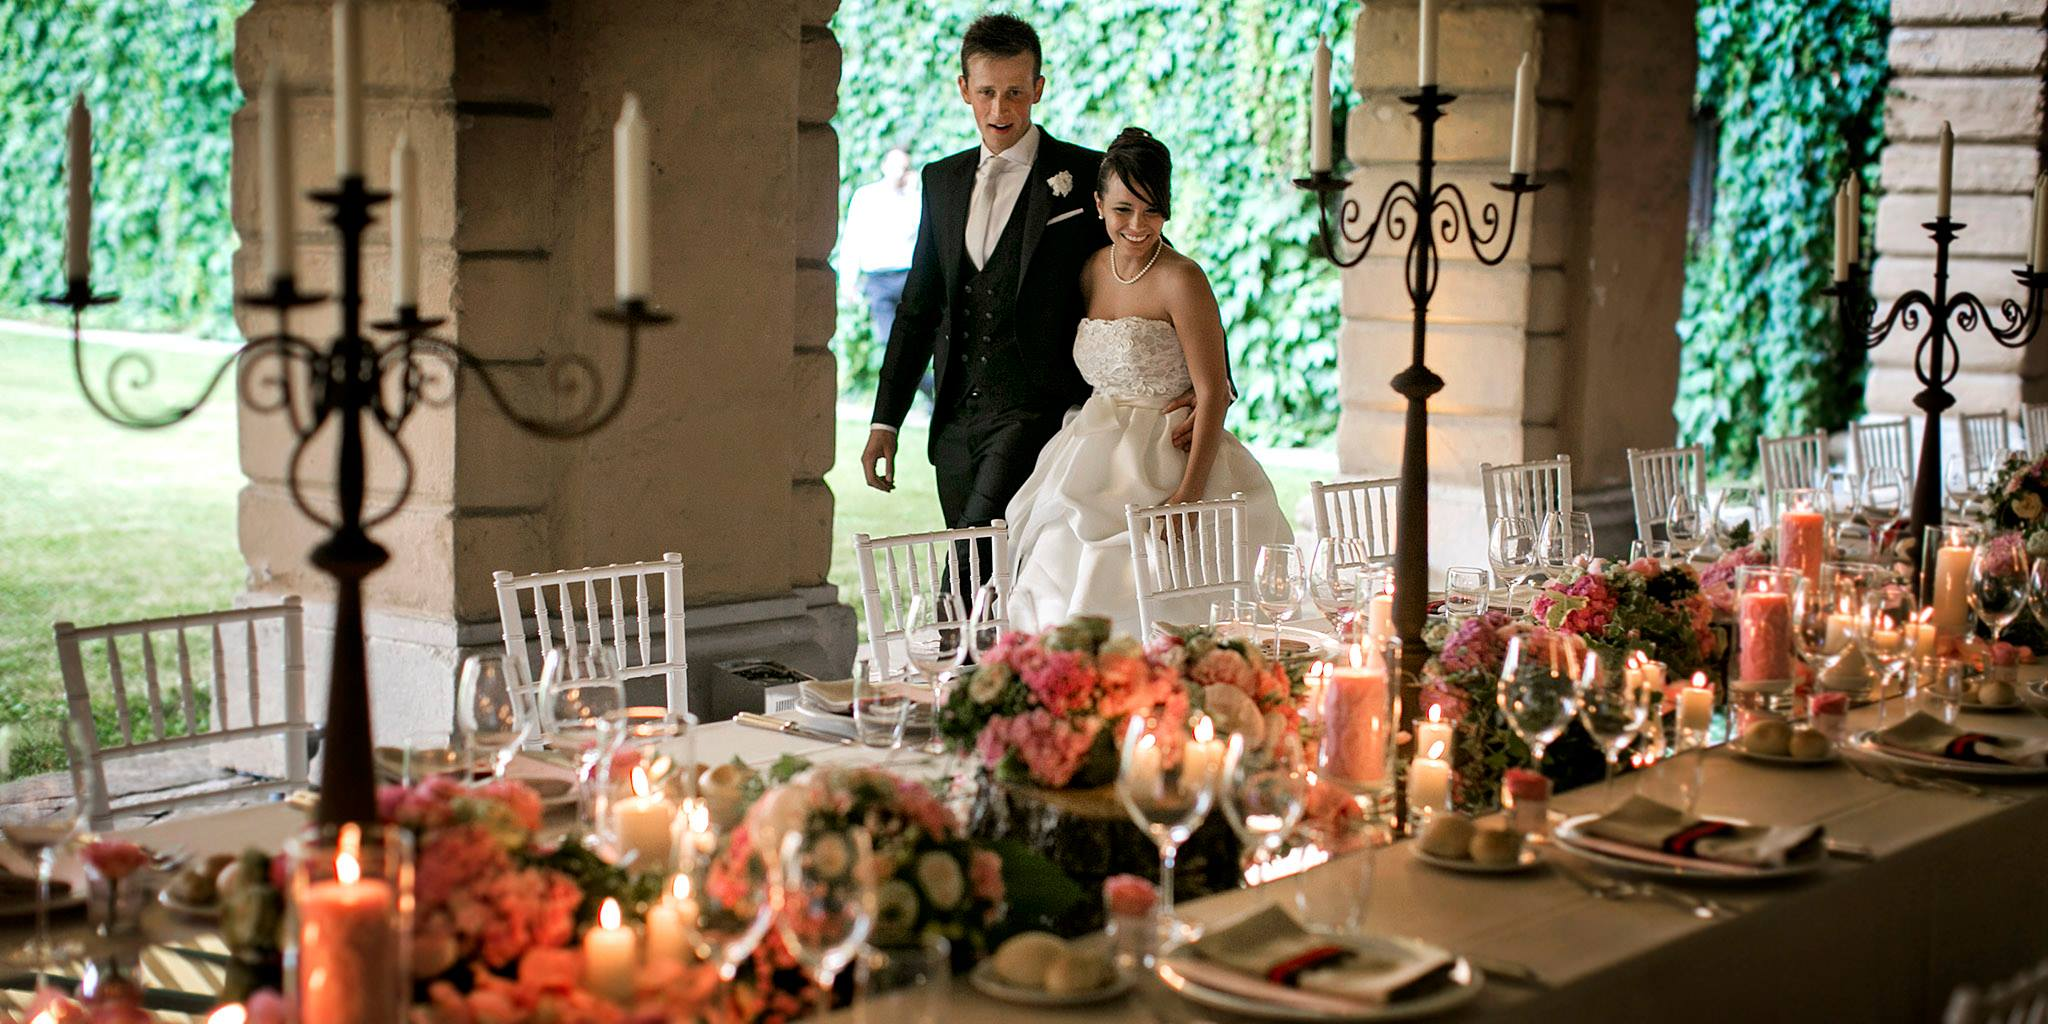 Where To Get Married In Italy: Italian Weddings - Italy Travel And Life